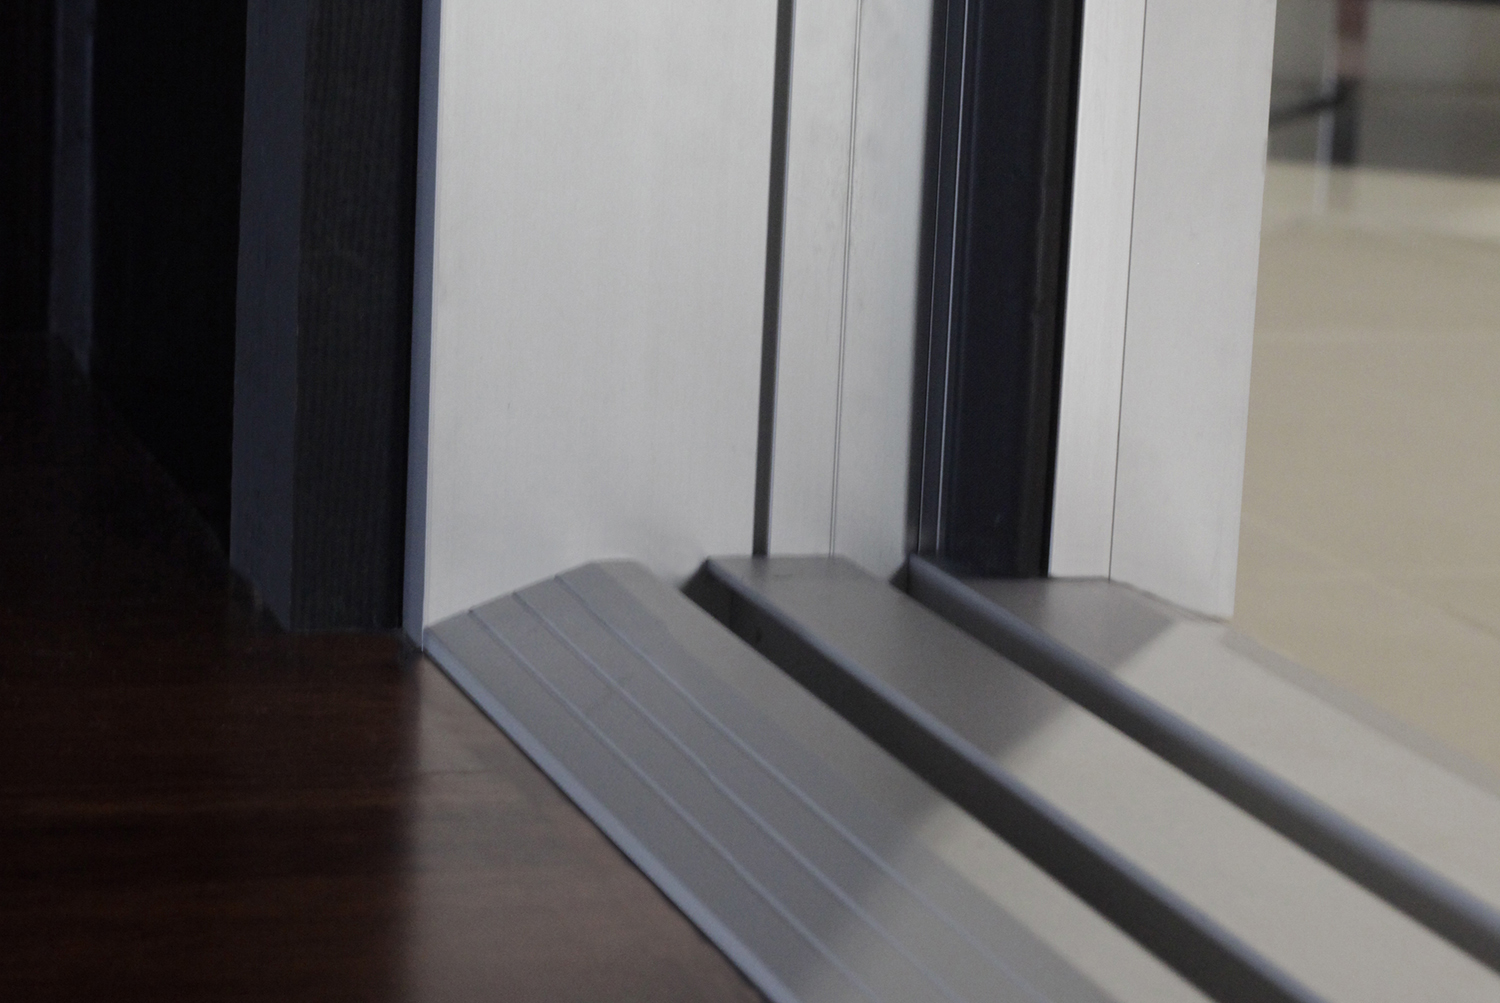 Folding Door Features Ada Compliant Ramp Sill Retrofit